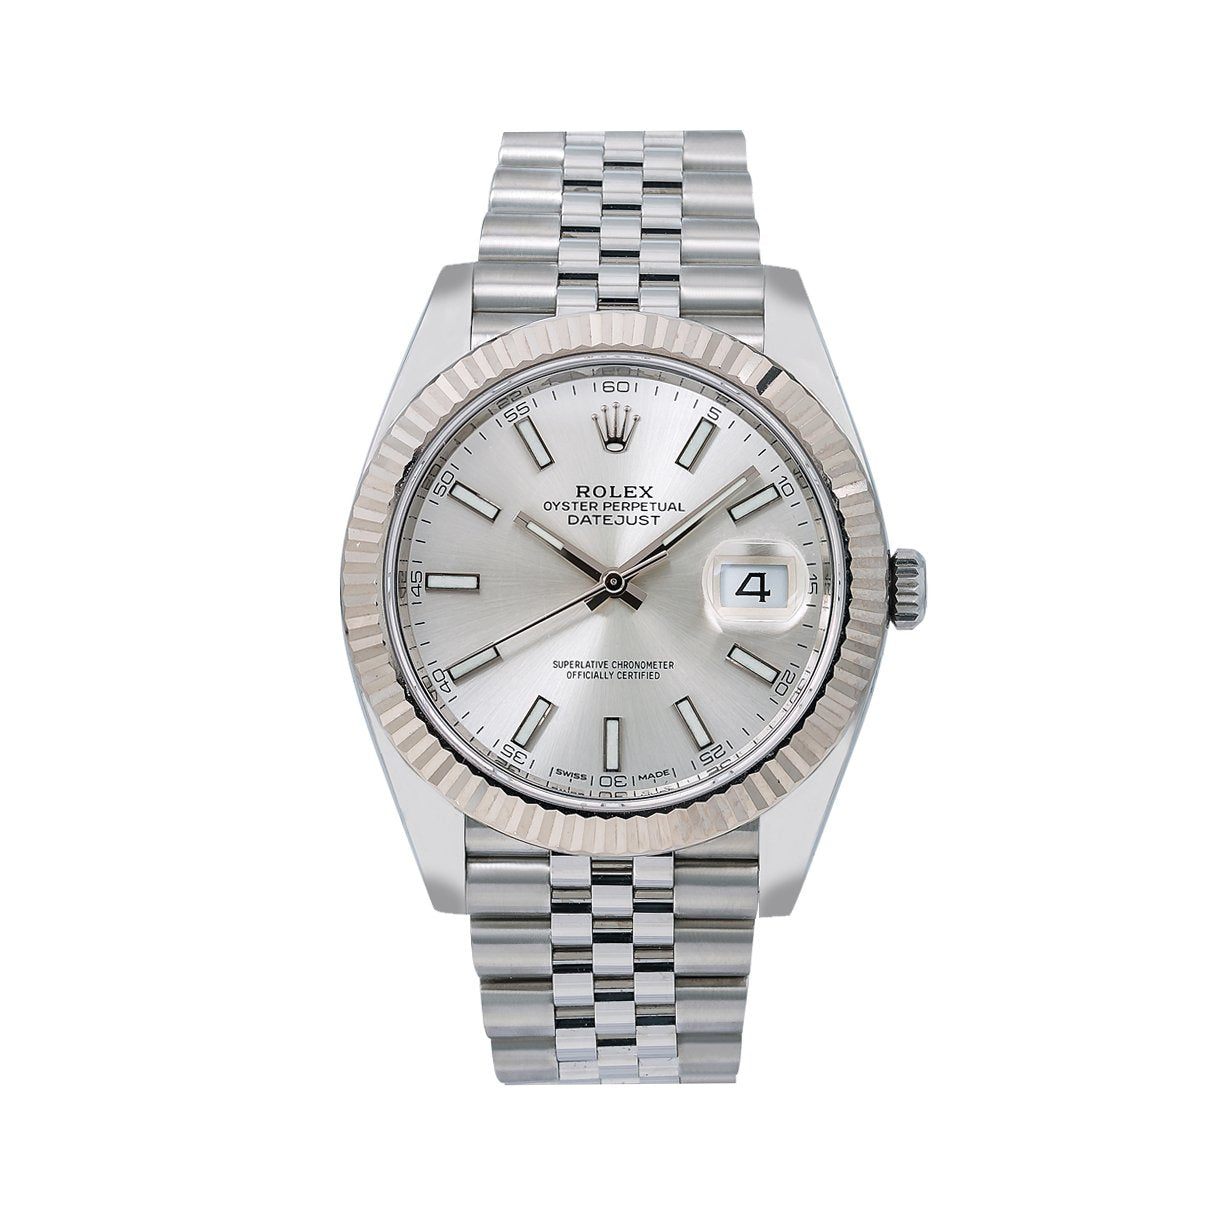 Rolex Datejust 126334 41MM Silver Dial With Stainless Steel Jubilee Bracelet